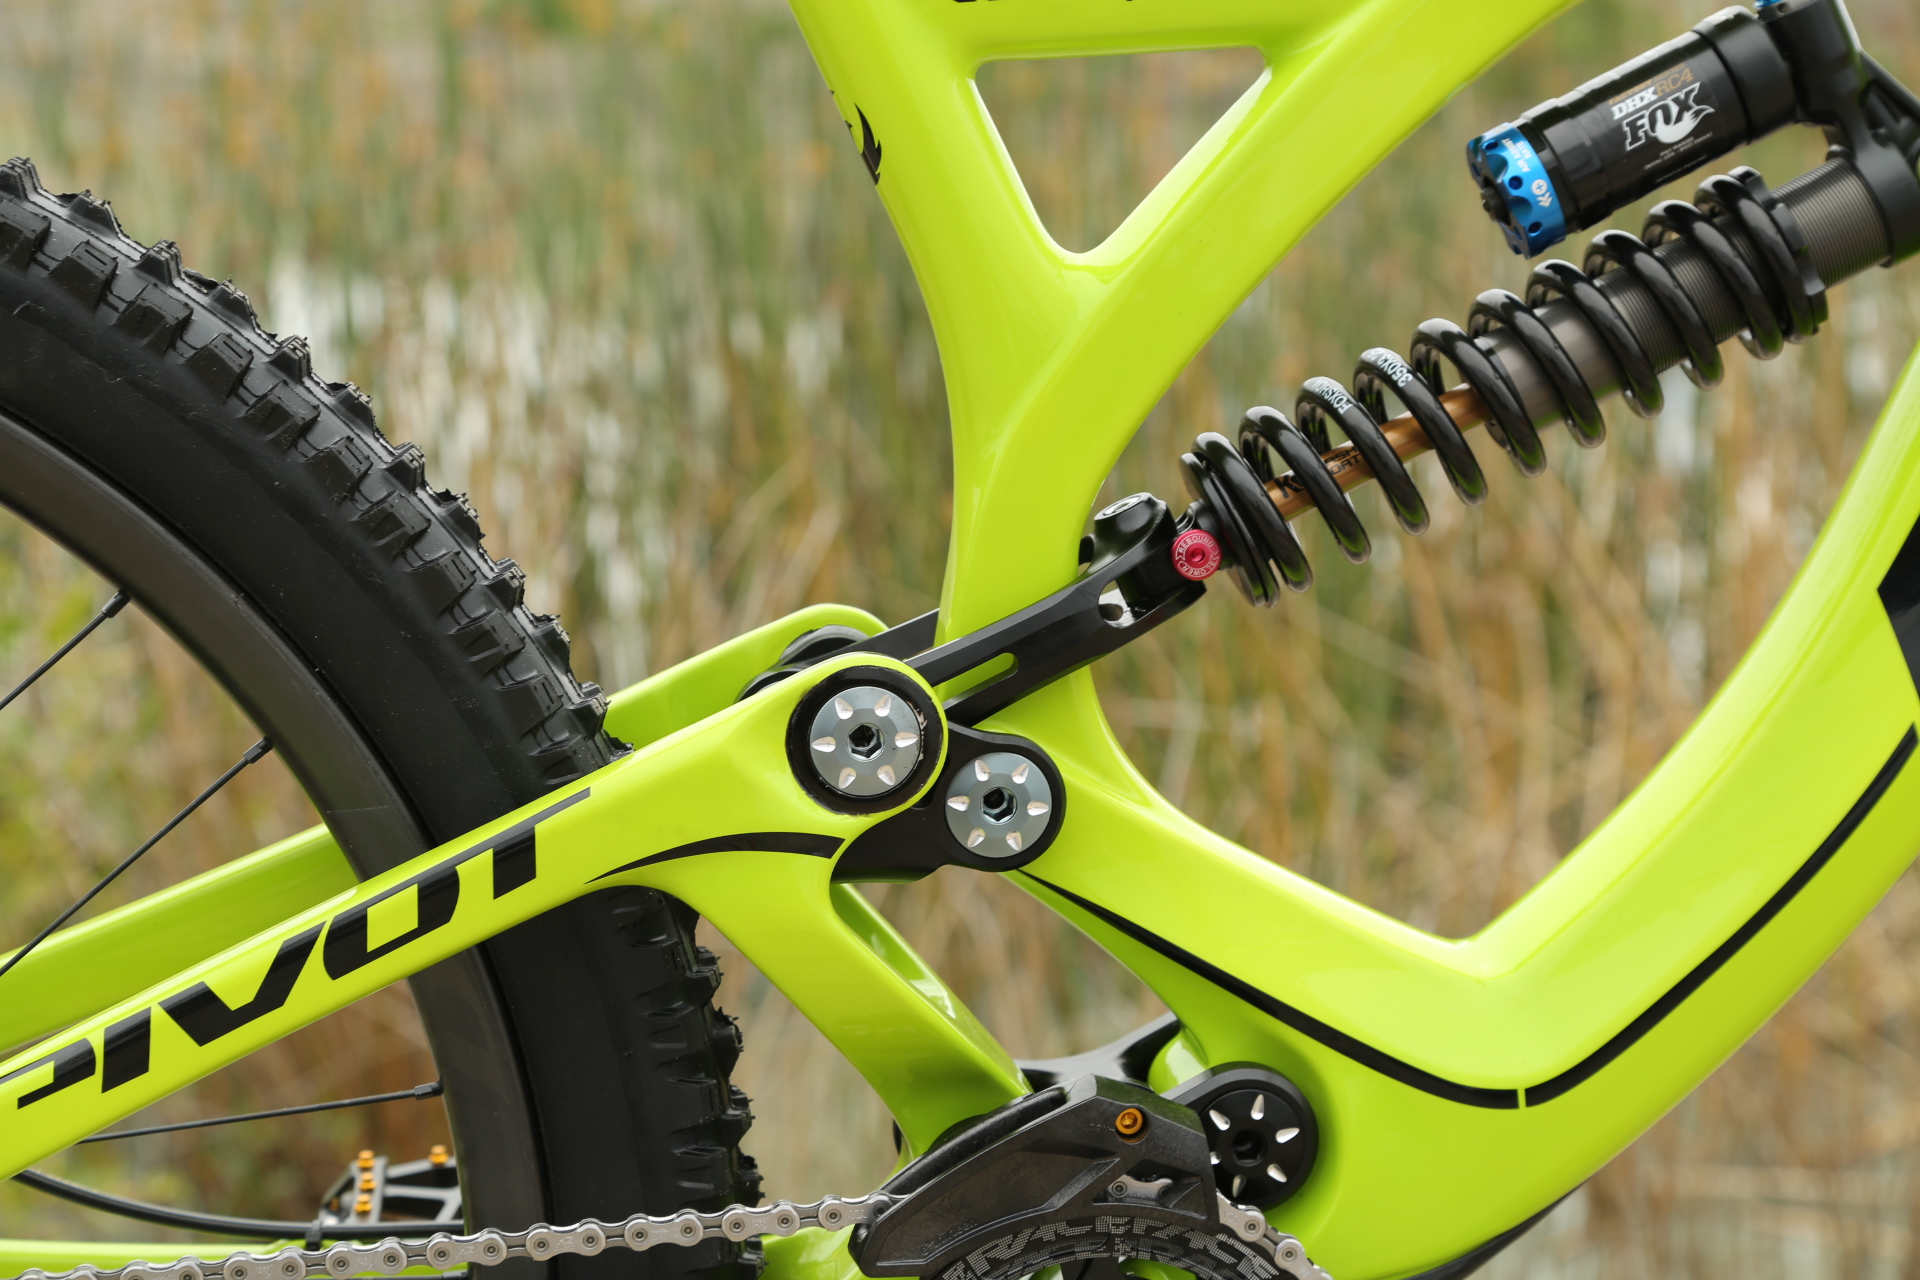 Bike with downhill suspension